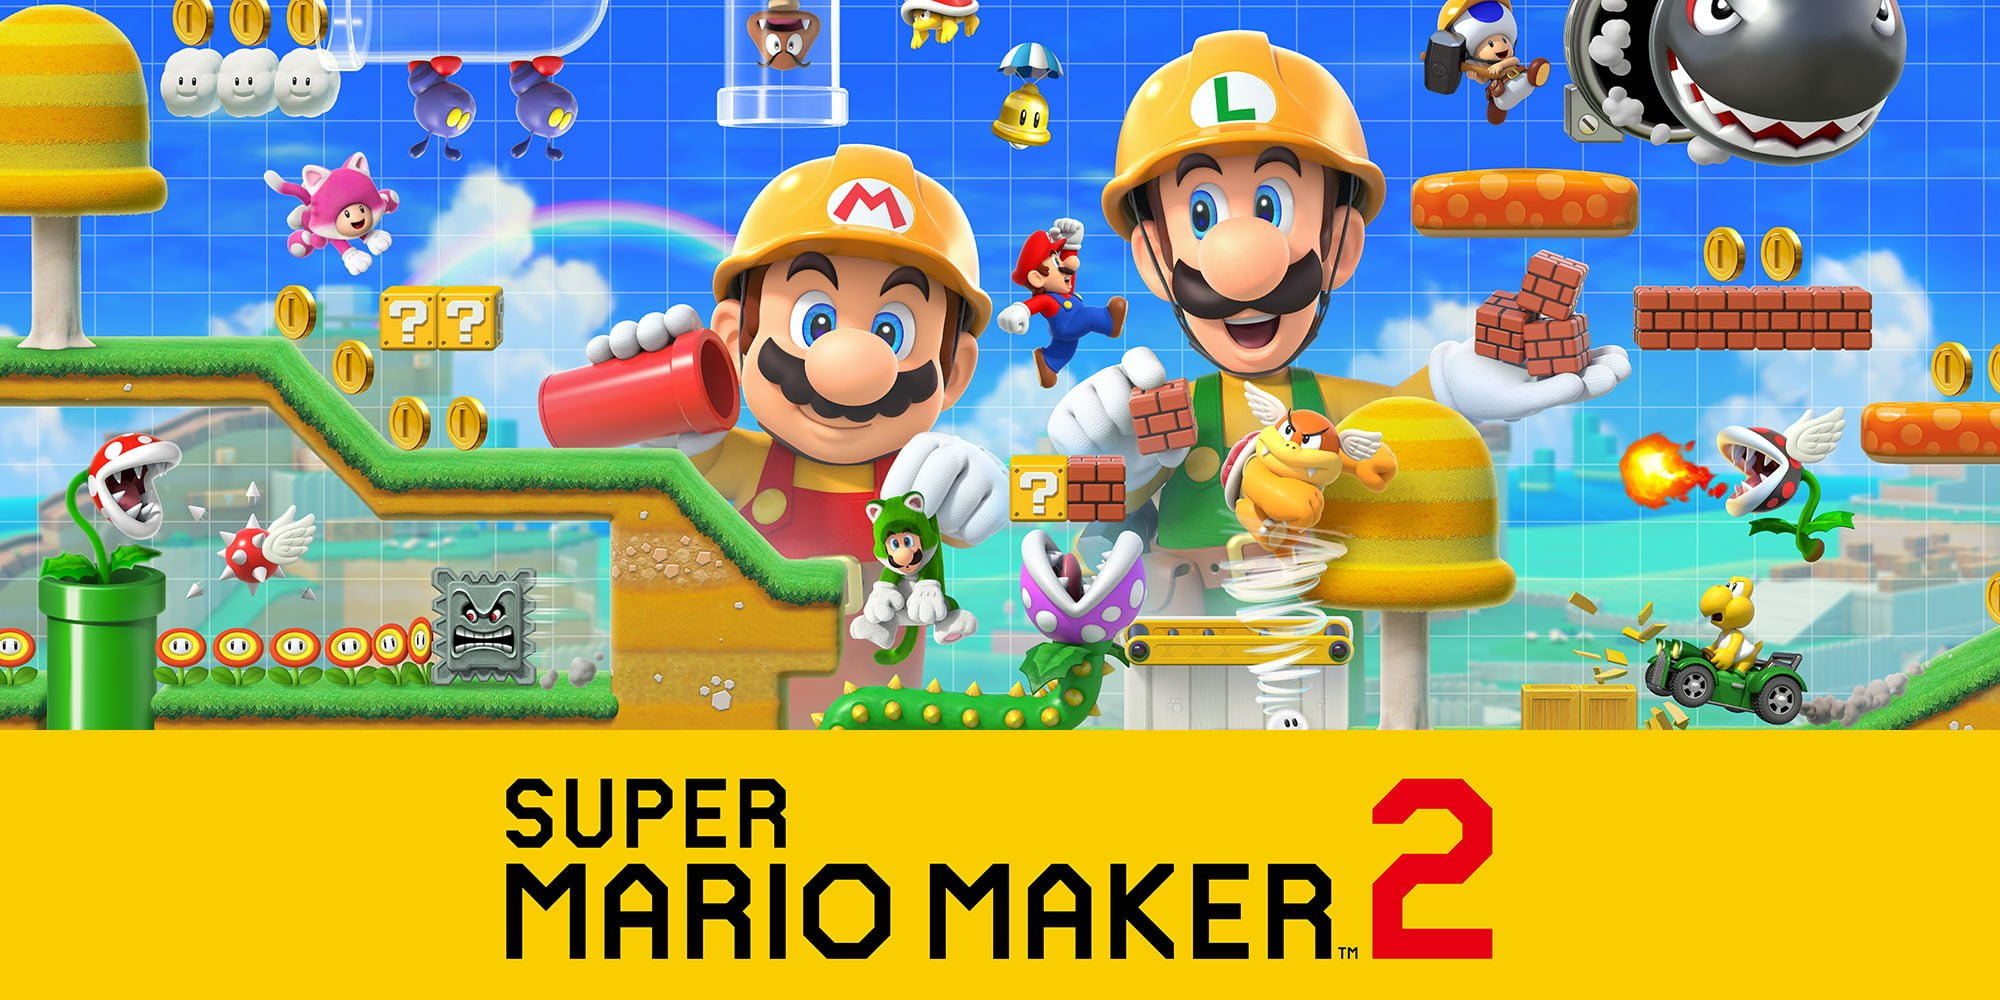 Super Mario Maker 2 Full Version Free Download · FrontLine